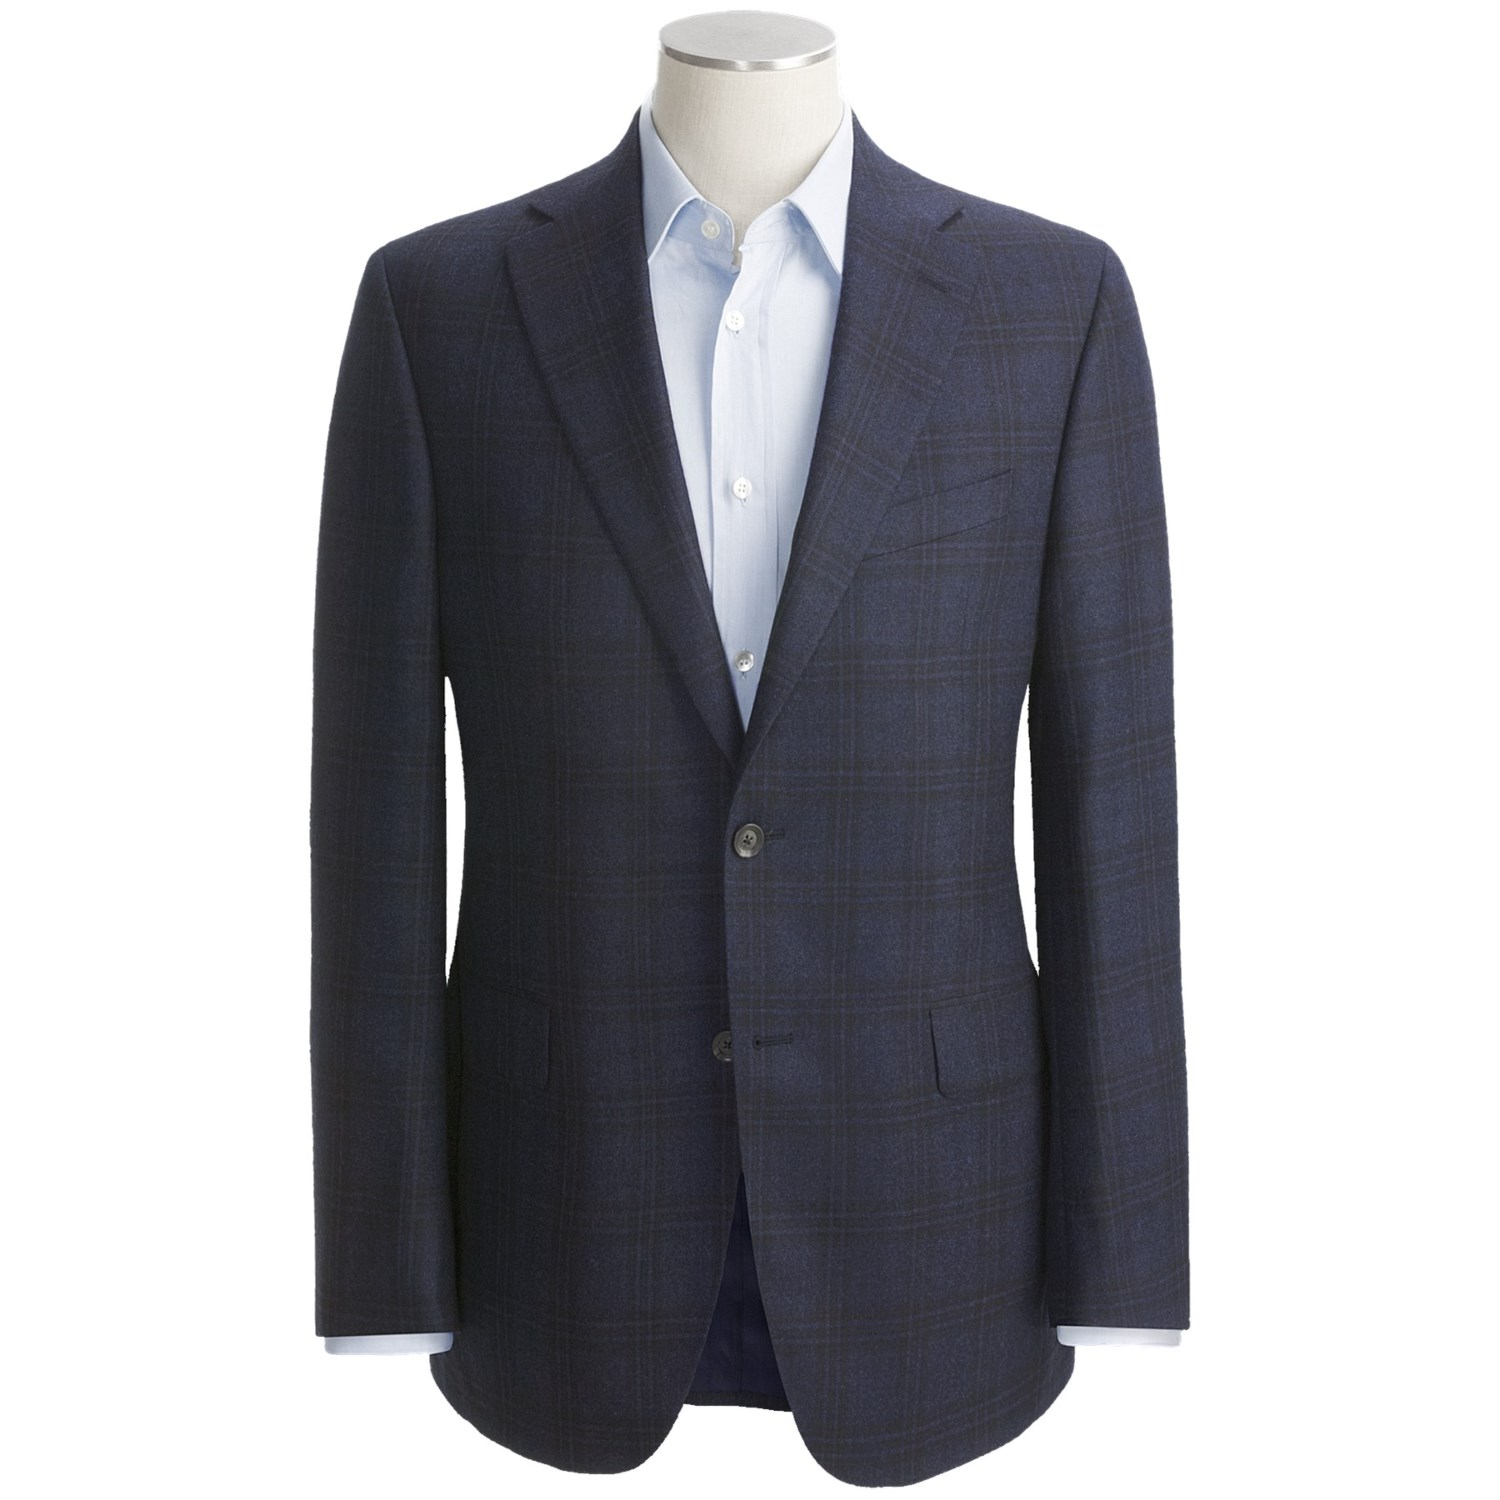 Shop for men's Sport Coats - All online at Men's Wearhouse. Browse the latest Sport Coats styles & selection for men from top brands & designers from the leader in men's apparel. Available in regular sizes and big & tall sizes. BUY 1 GET 1 SUIT FOR $ OR 1 SPORT COAT OR 1 OUTERWEAR FOR $ Select items only. Buy one item at its regular.